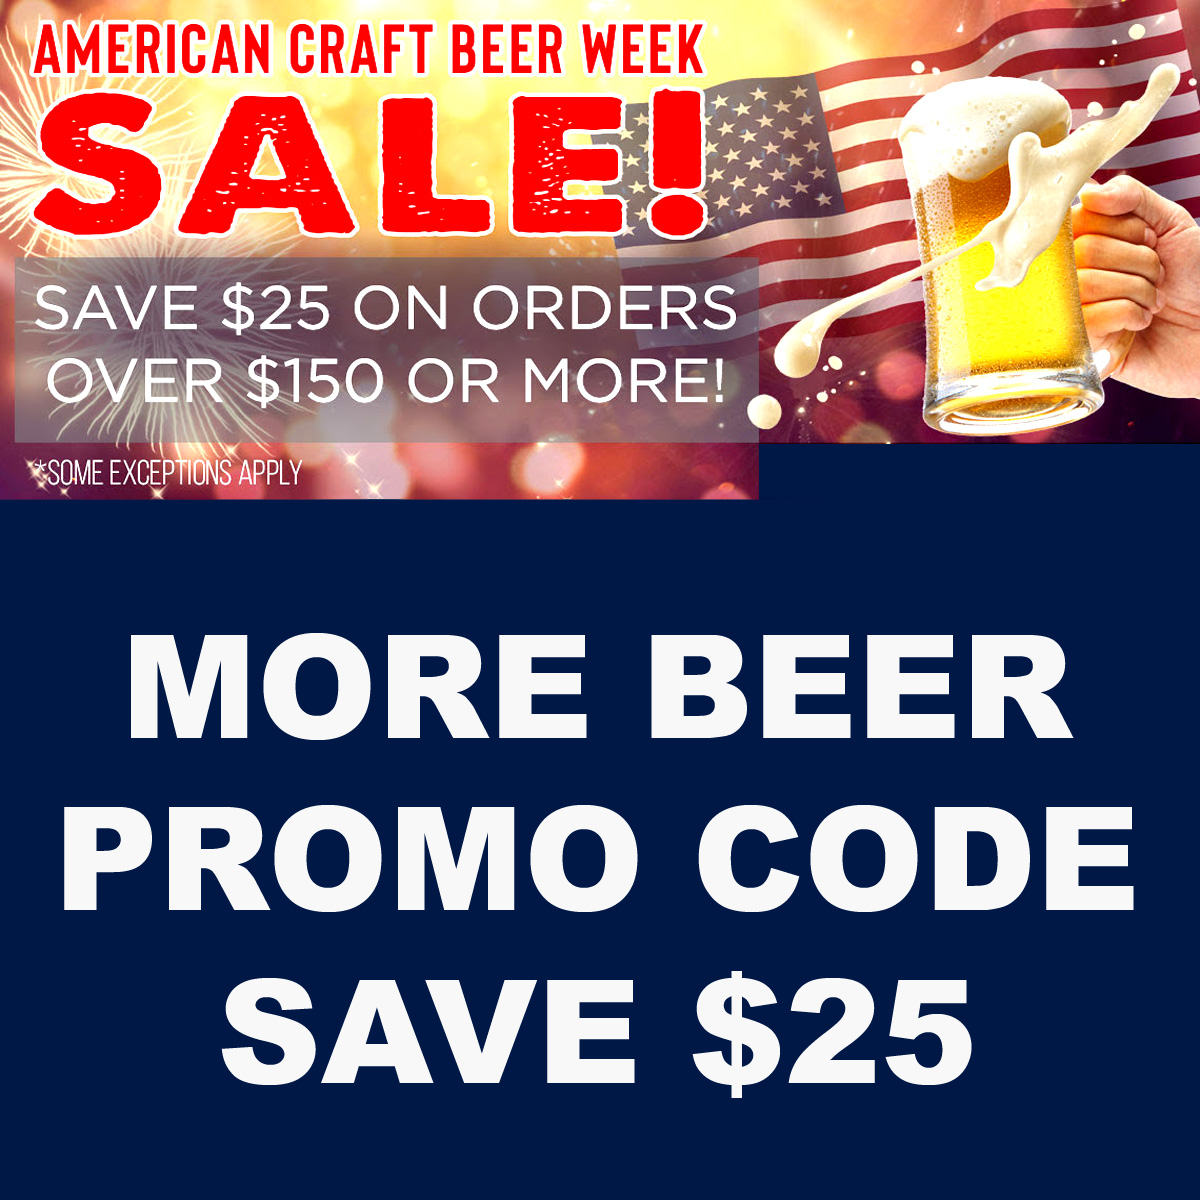 MoreBeer Use this More Beer promo code for $25 off your $150 purchase Coupon Code